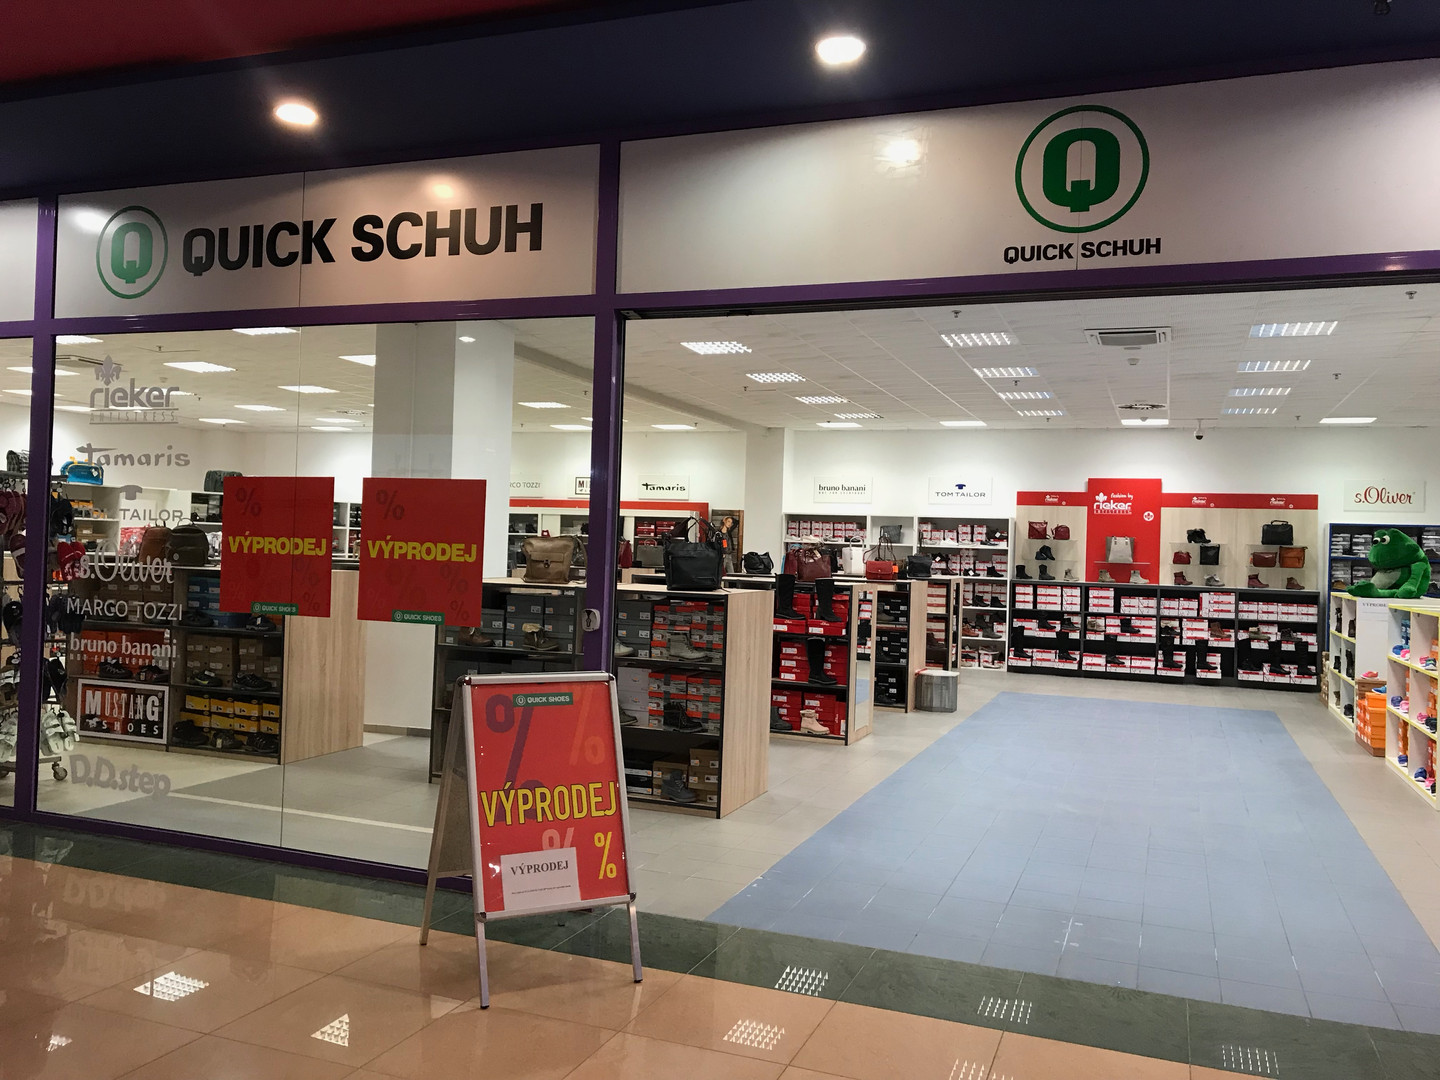 Check out our stores QUICK SCHUH - SHOES and DĚTSKÁ OBUV.